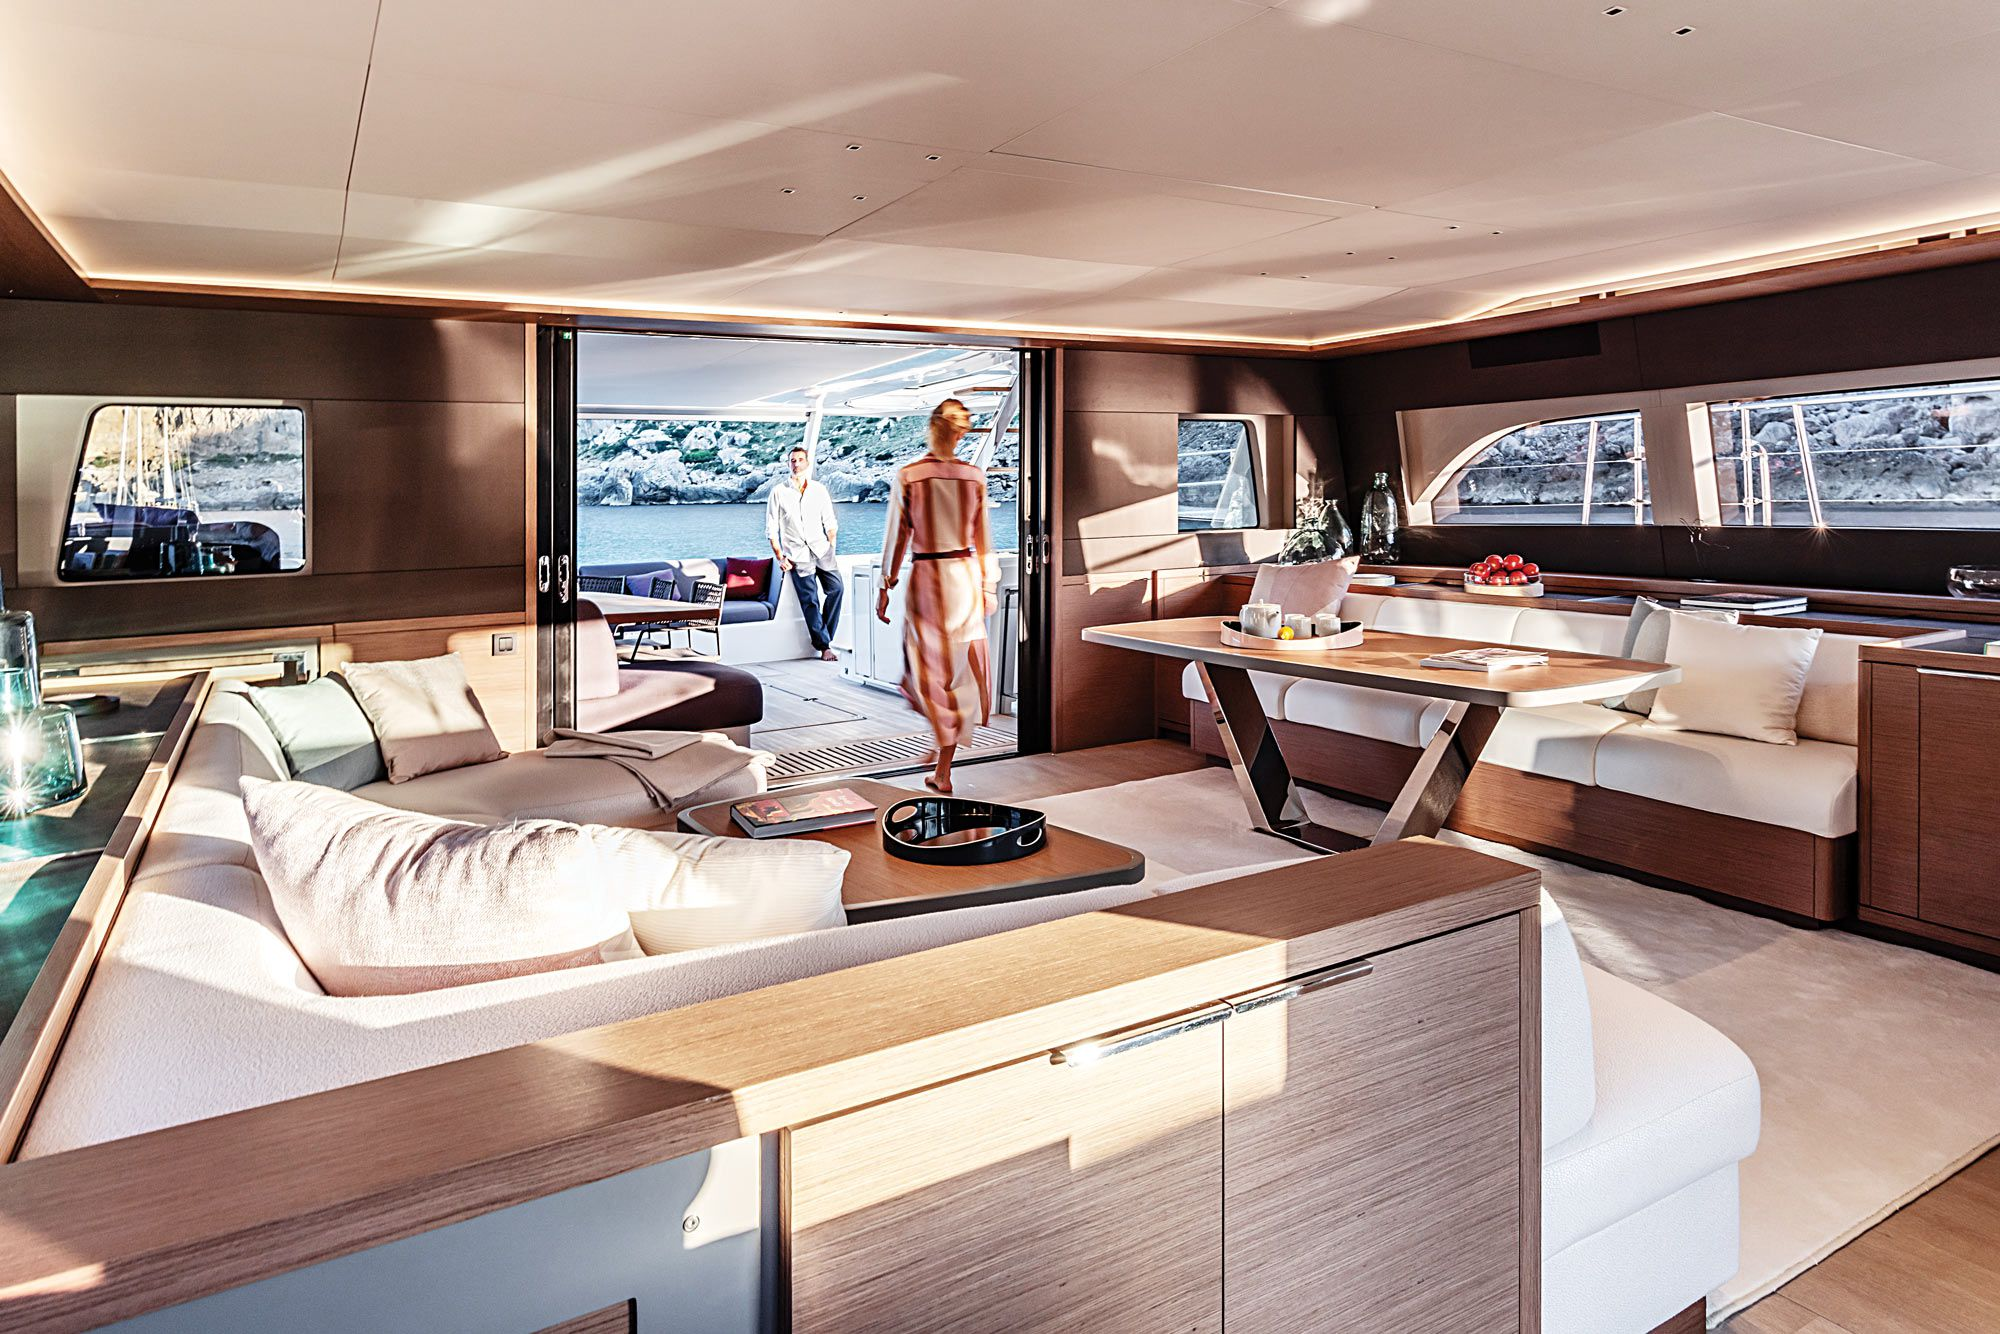 Owners can choose from several different salon layouts, depending on their preference for galley, dining and sofa placement.